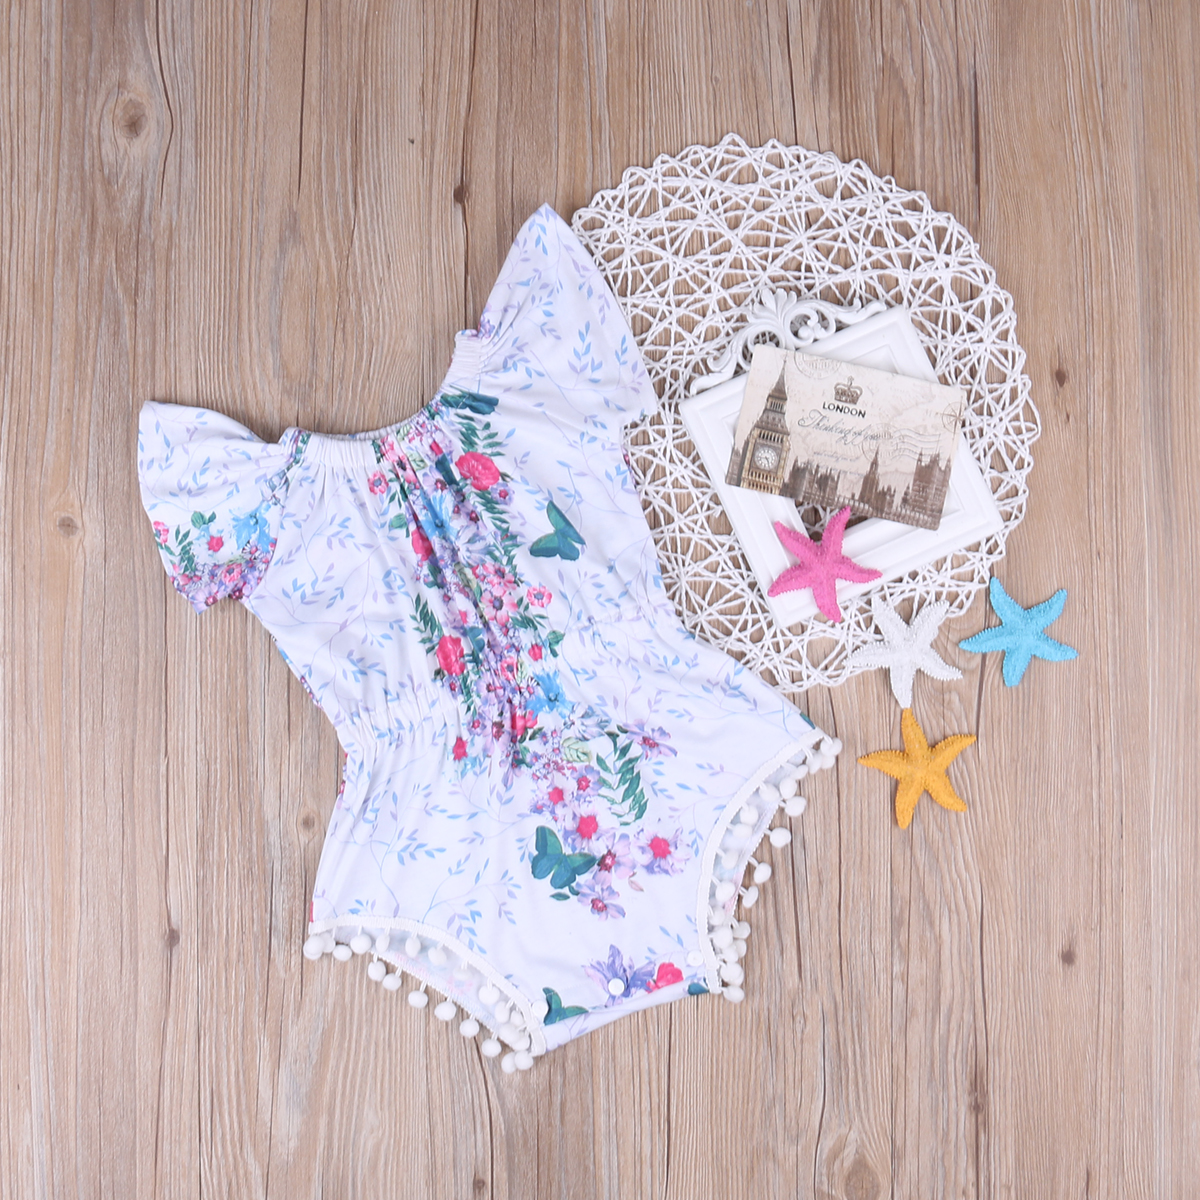 2017 Summer Floral Baby Girl Romper Clothes Cute Newborn Infant Bebes Tassel Rompers Toddler Kids Jumpsuit Outfit Sunsuit 0-24M newborn infant baby girl clothes strap lace floral romper jumpsuit outfit summer cotton backless one pieces outfit baby onesie